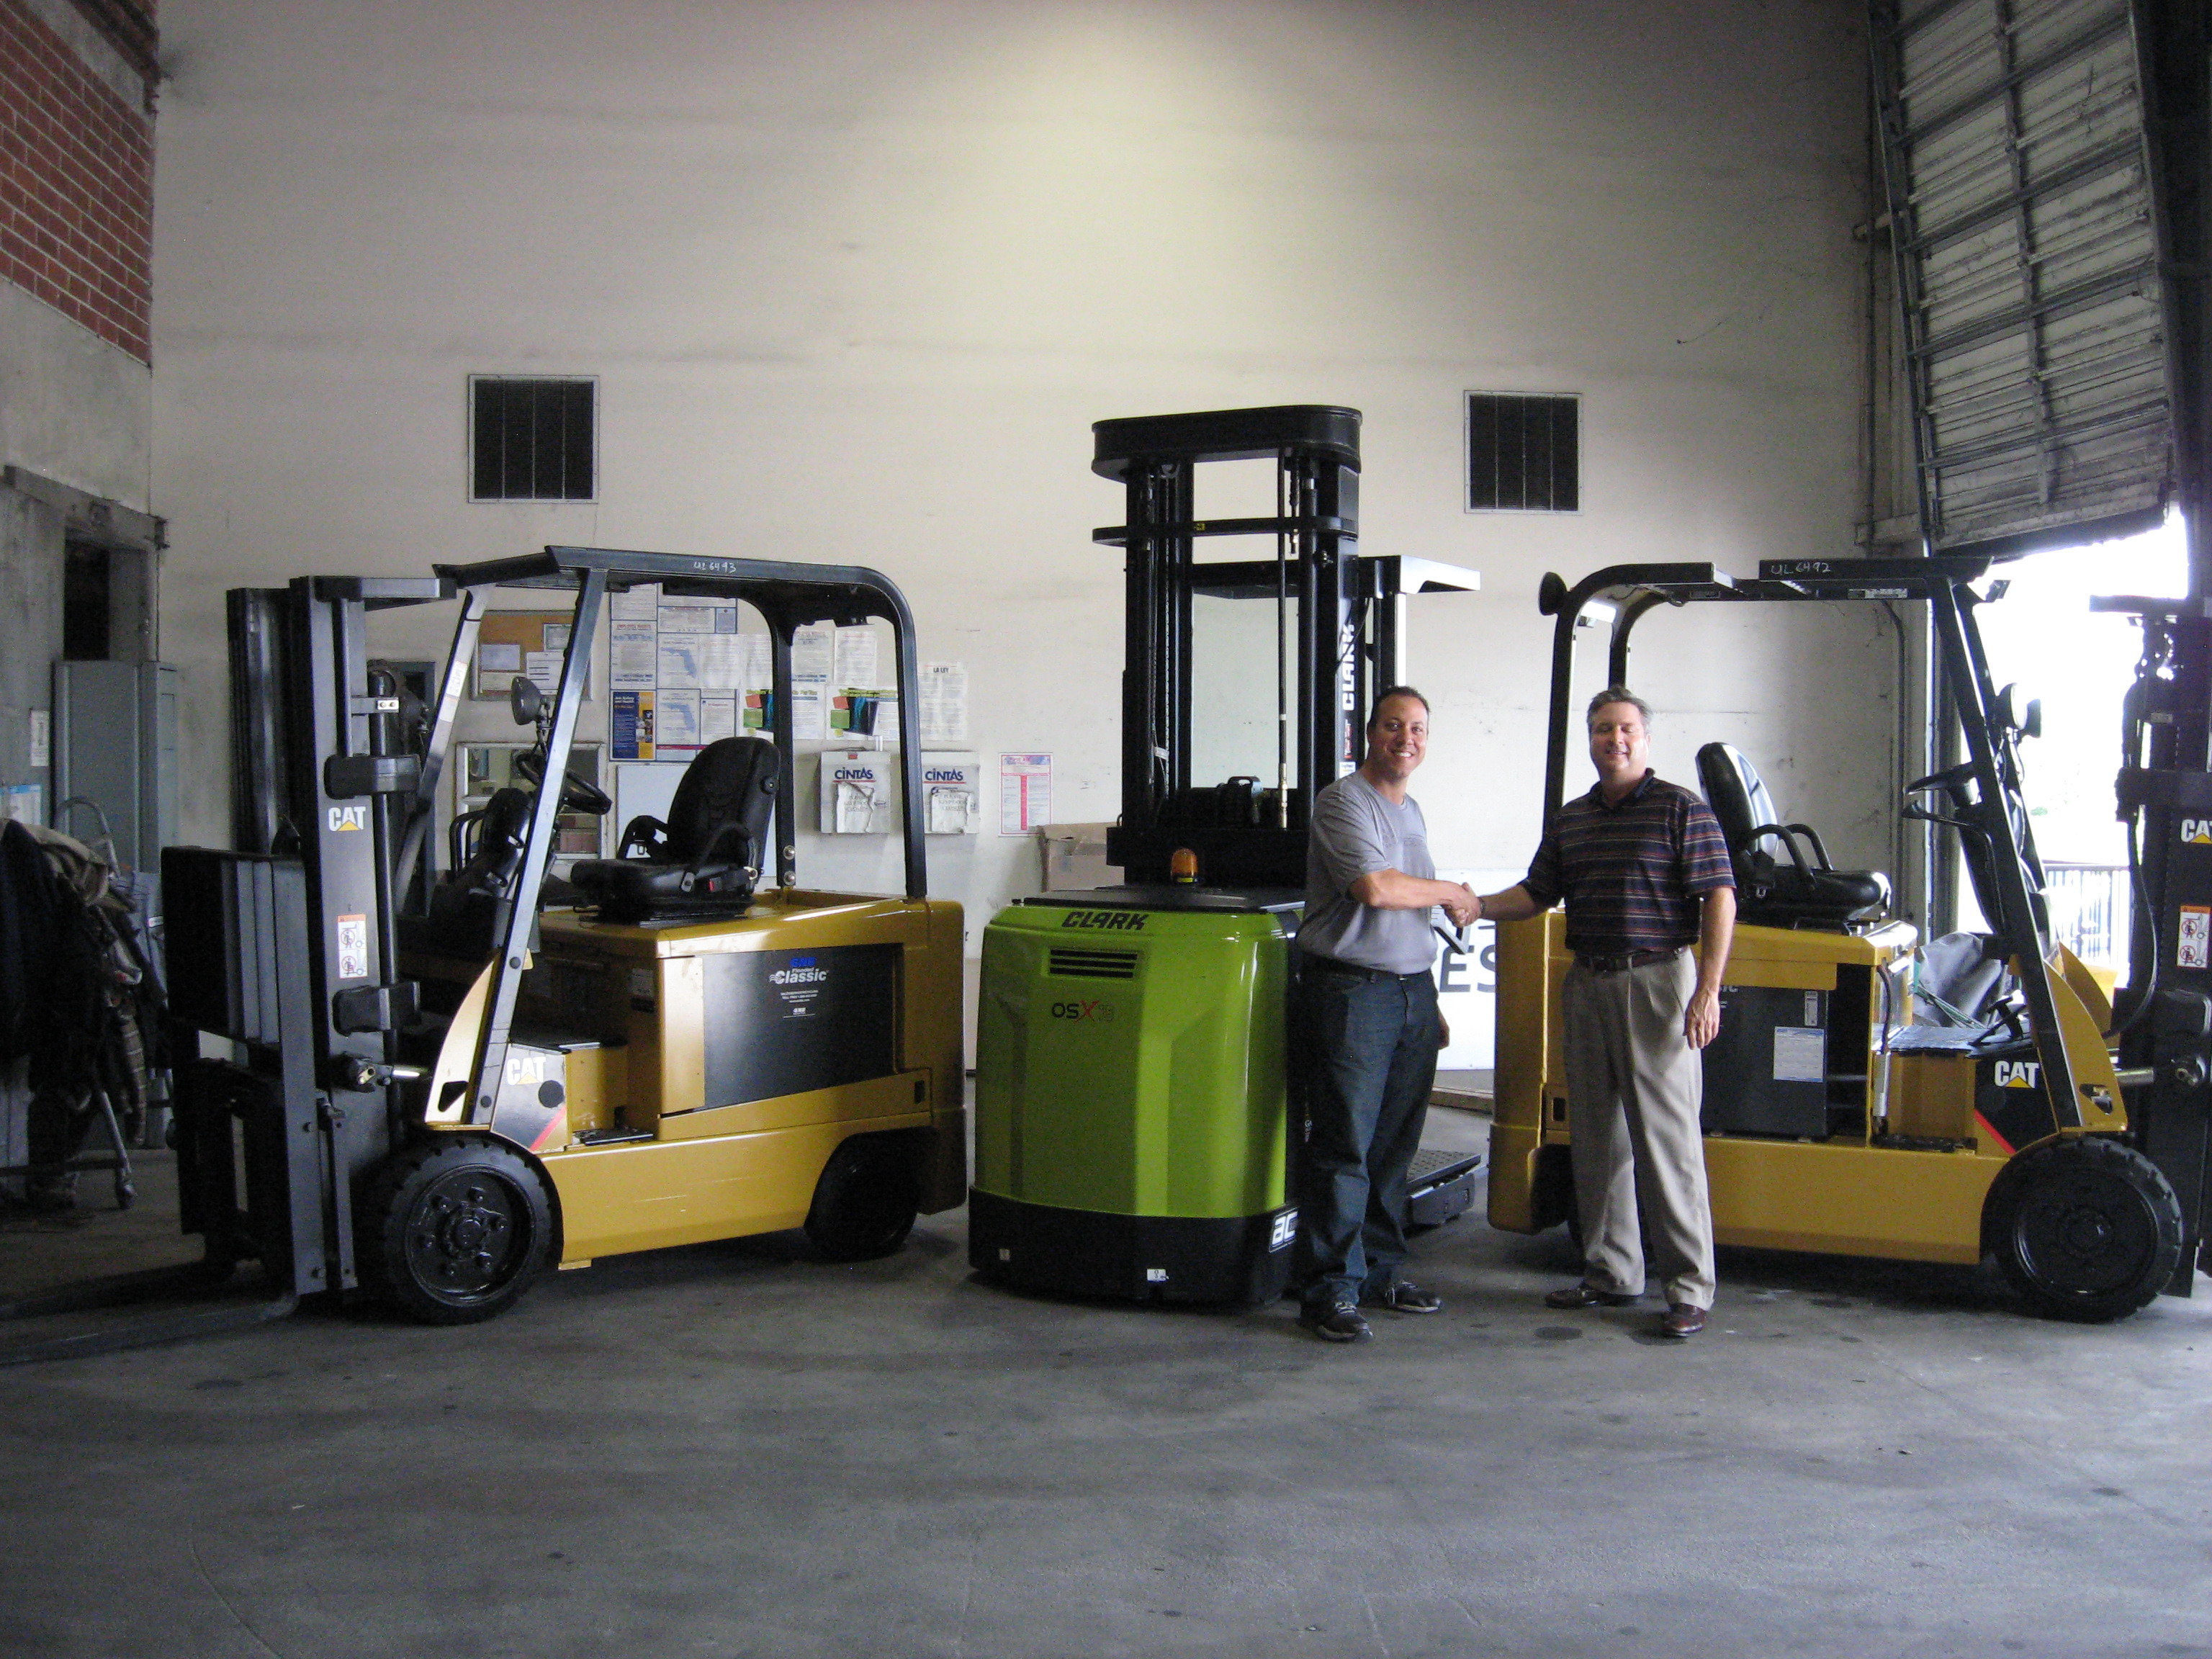 Ring Power Lift Trucks helped Corasential increase productivity and lower operating costs with new electric forklifts.